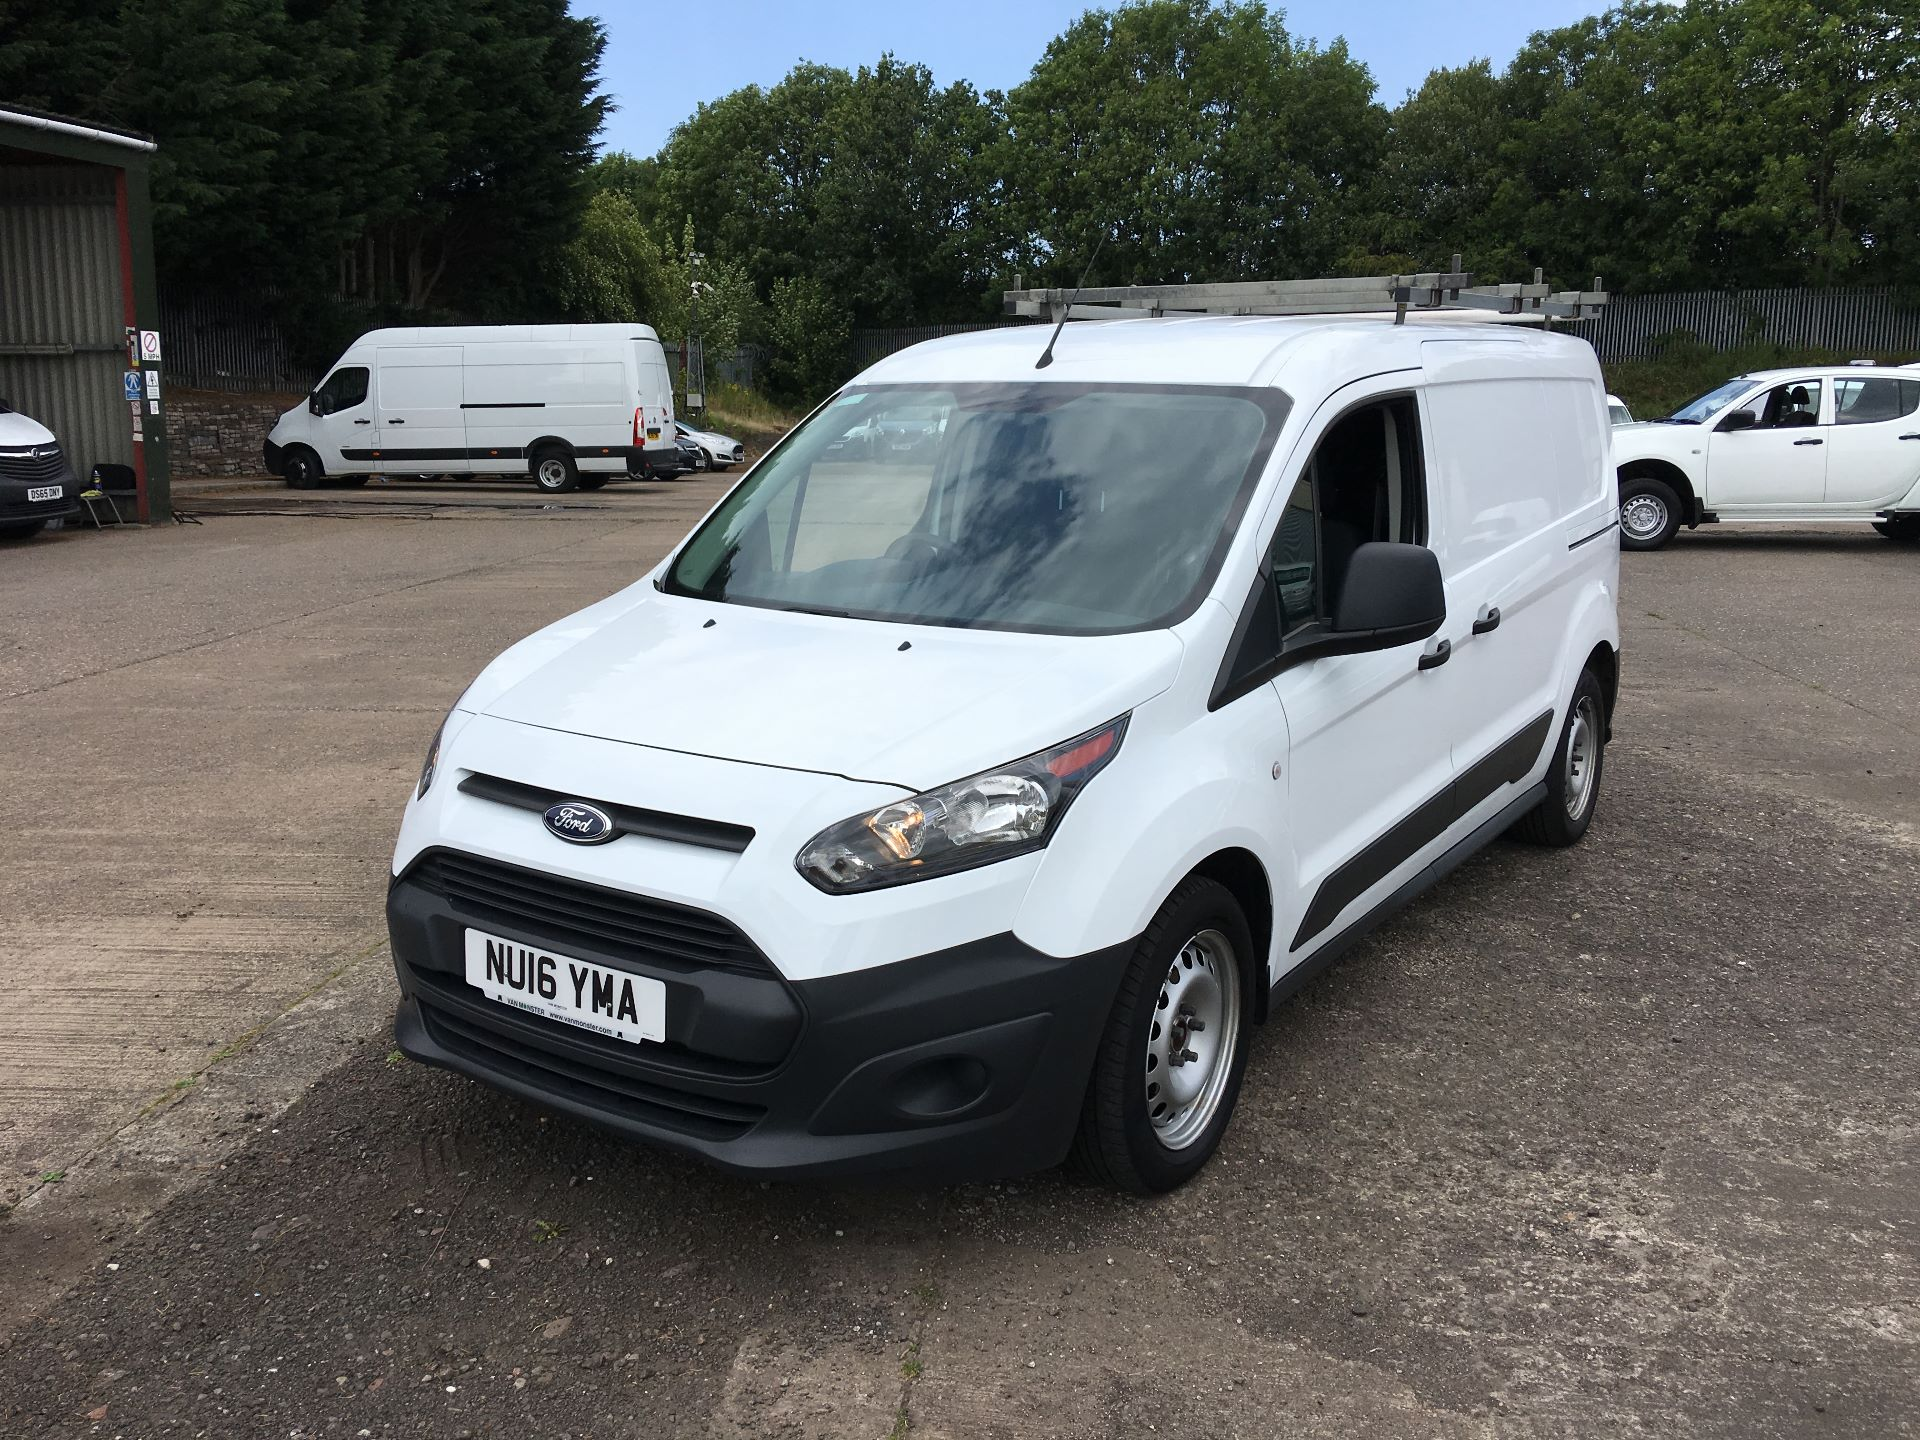 2016 Ford Transit Connect 220 L1 DIESEL 1.5 TDCI 100PS VAN EURO 6 (NU16YMA) Image 14